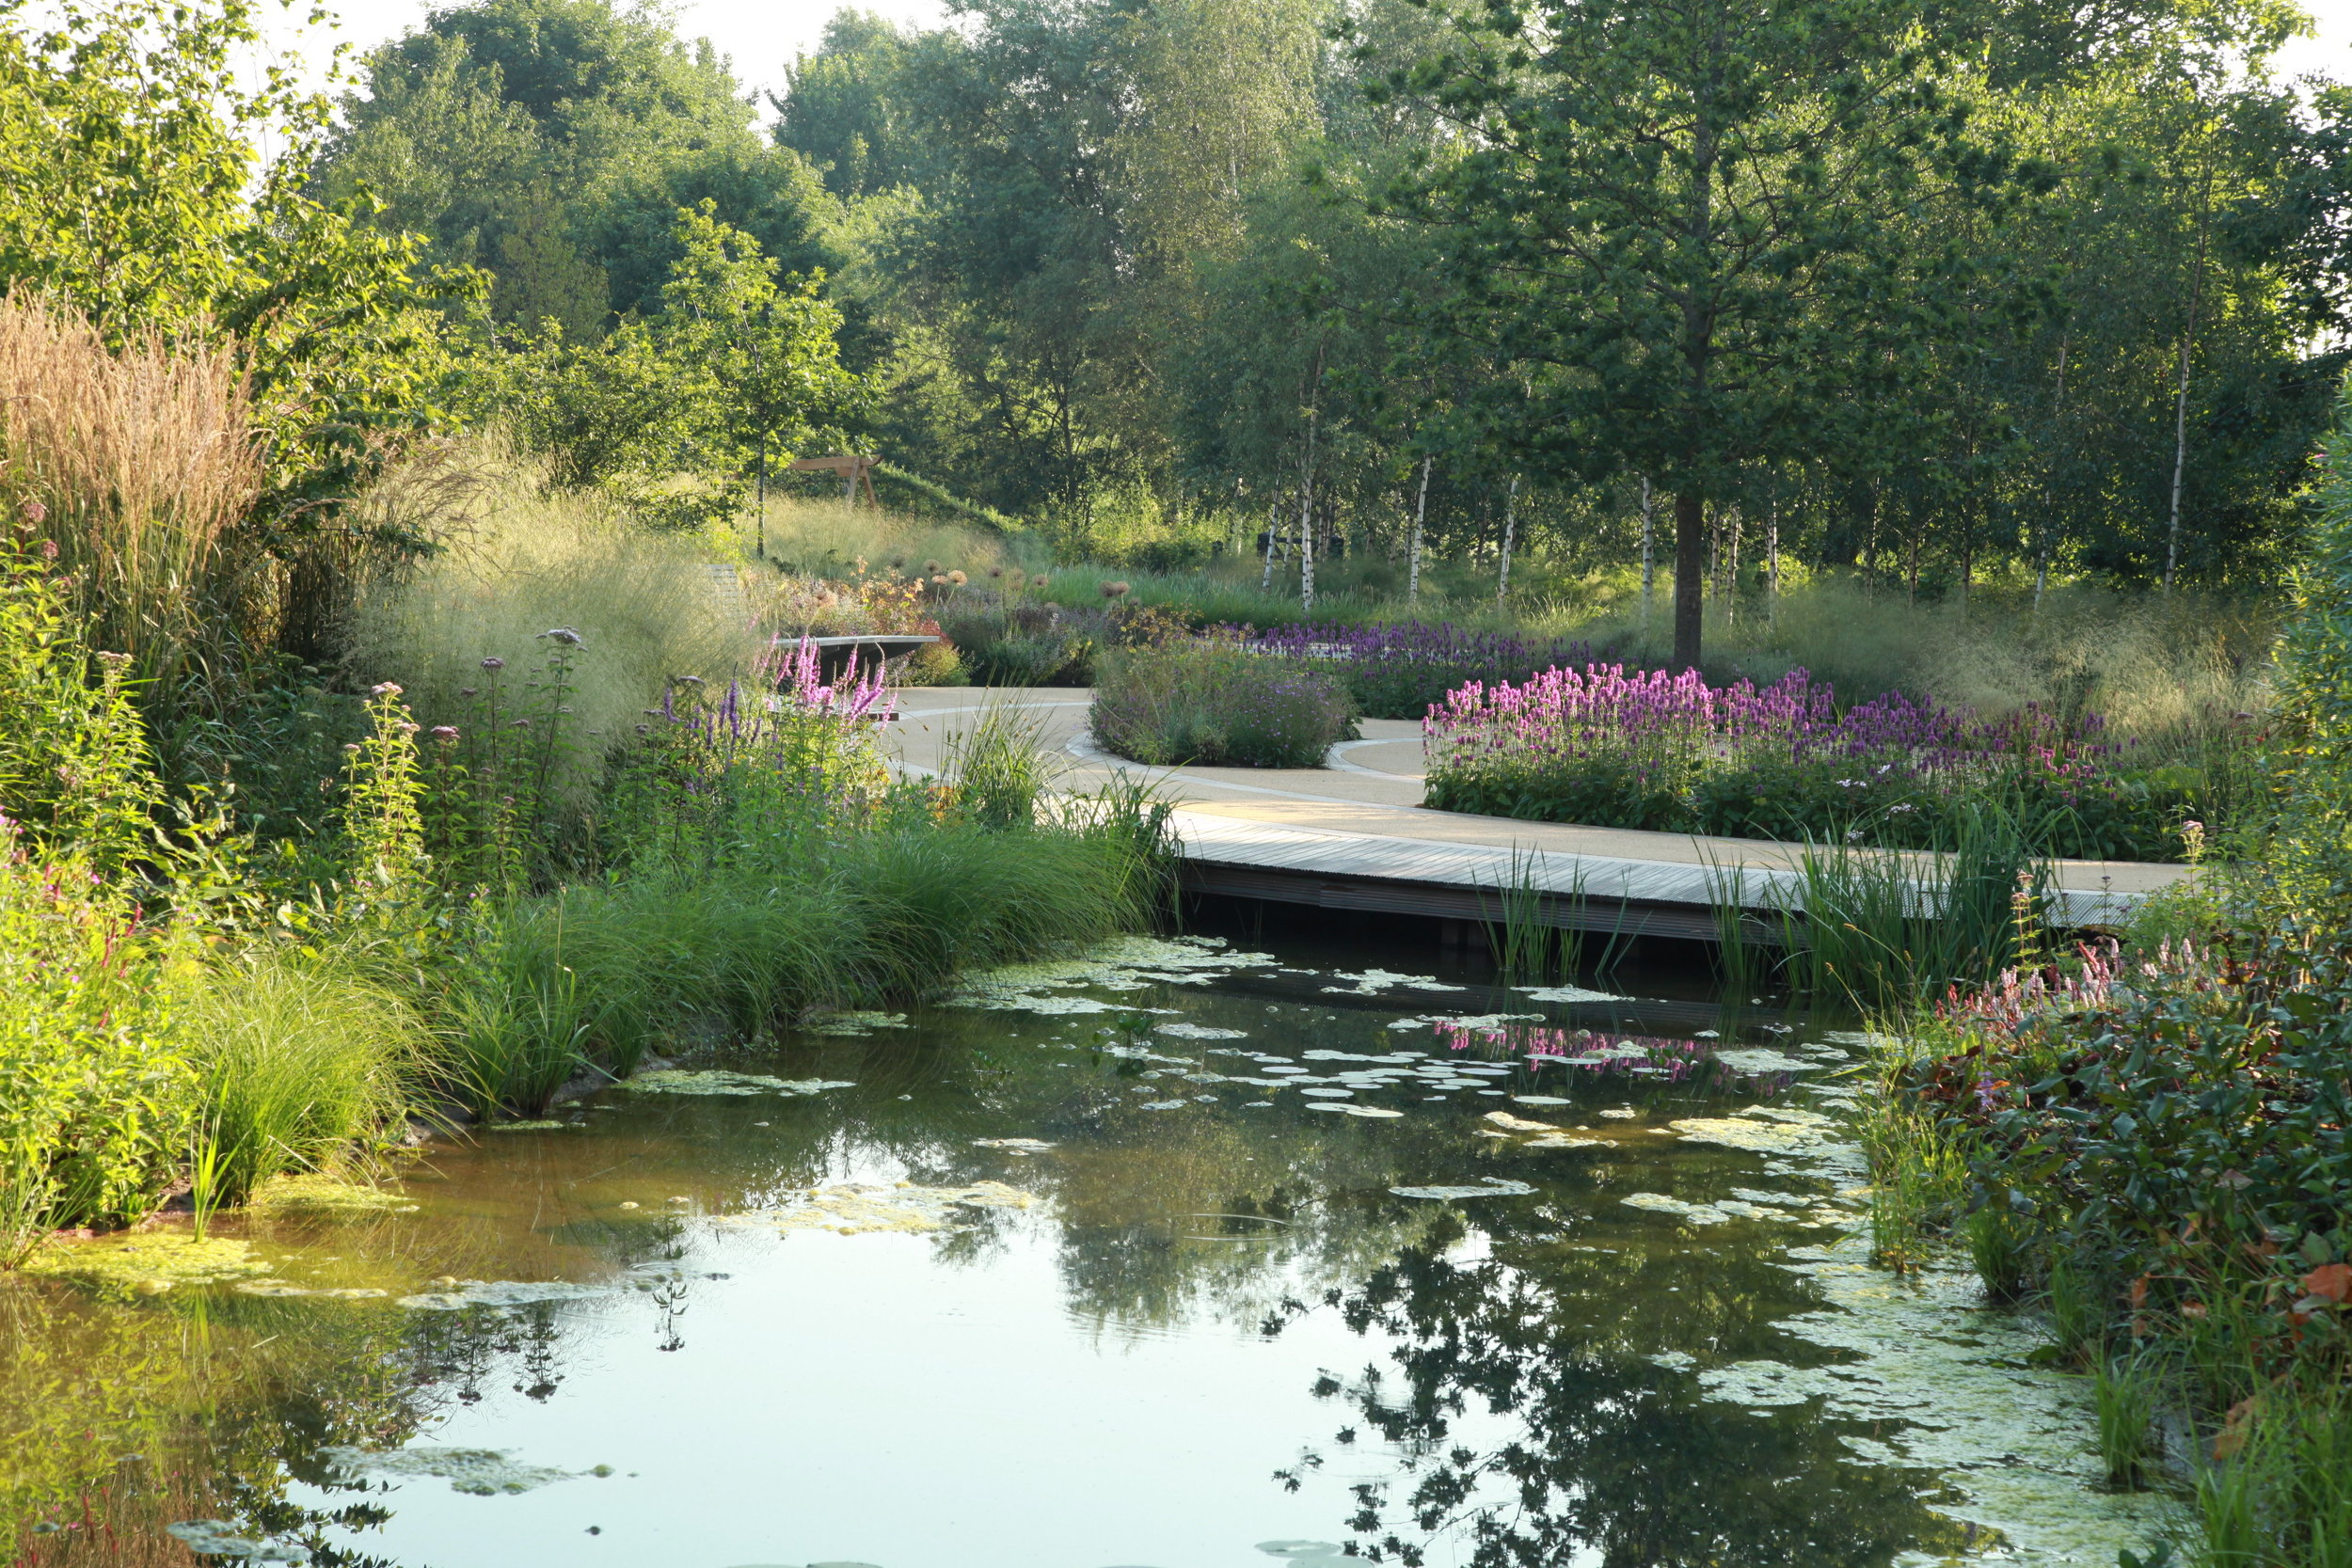 SPL_03_OlympicGardens_GreatBritishGarden_London.jpg